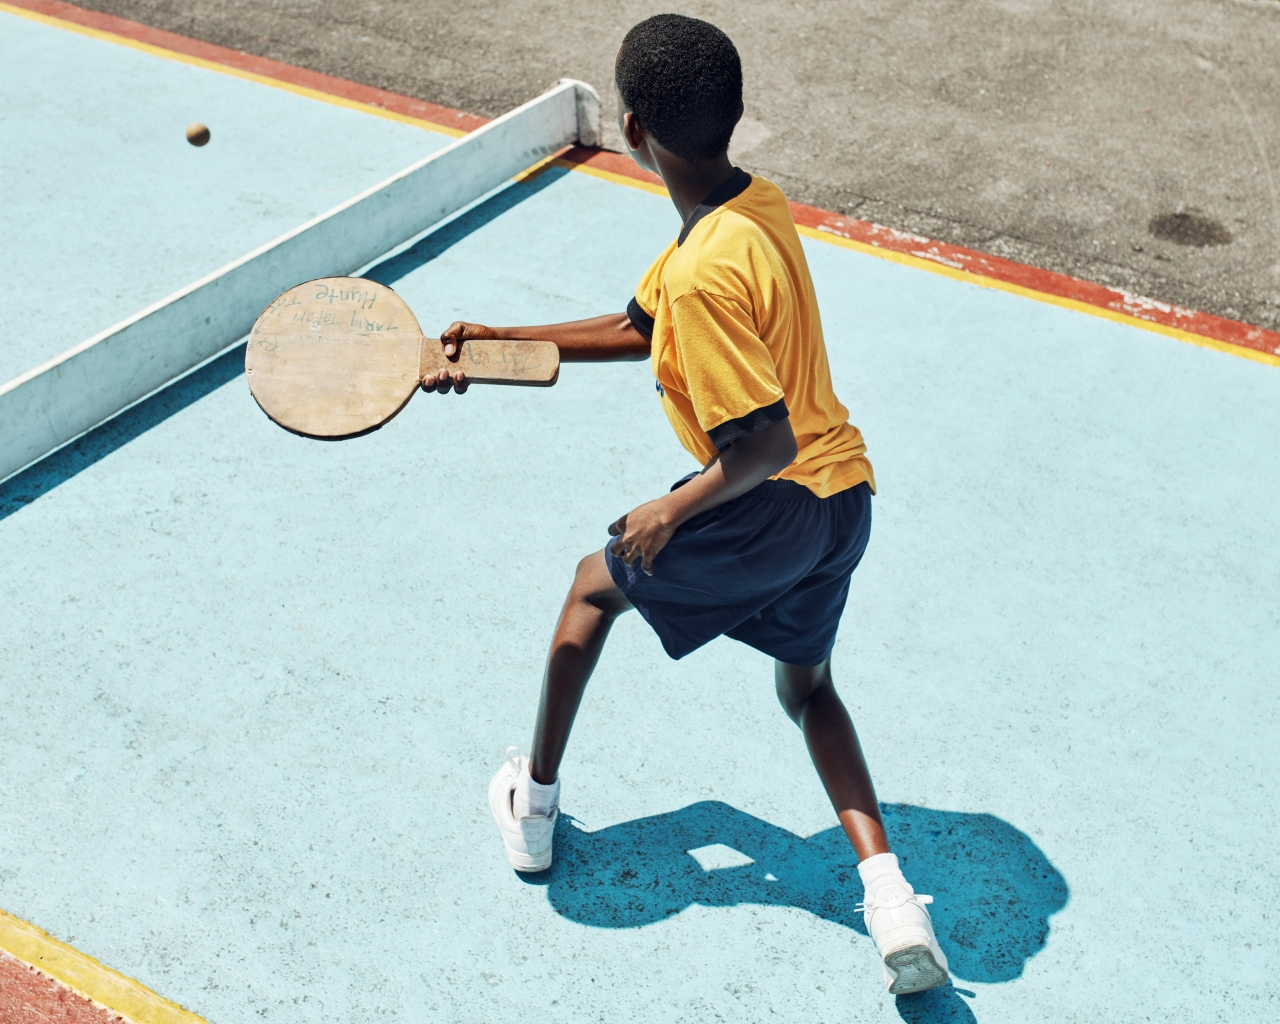 Road Tennis for Airbnb Magazine